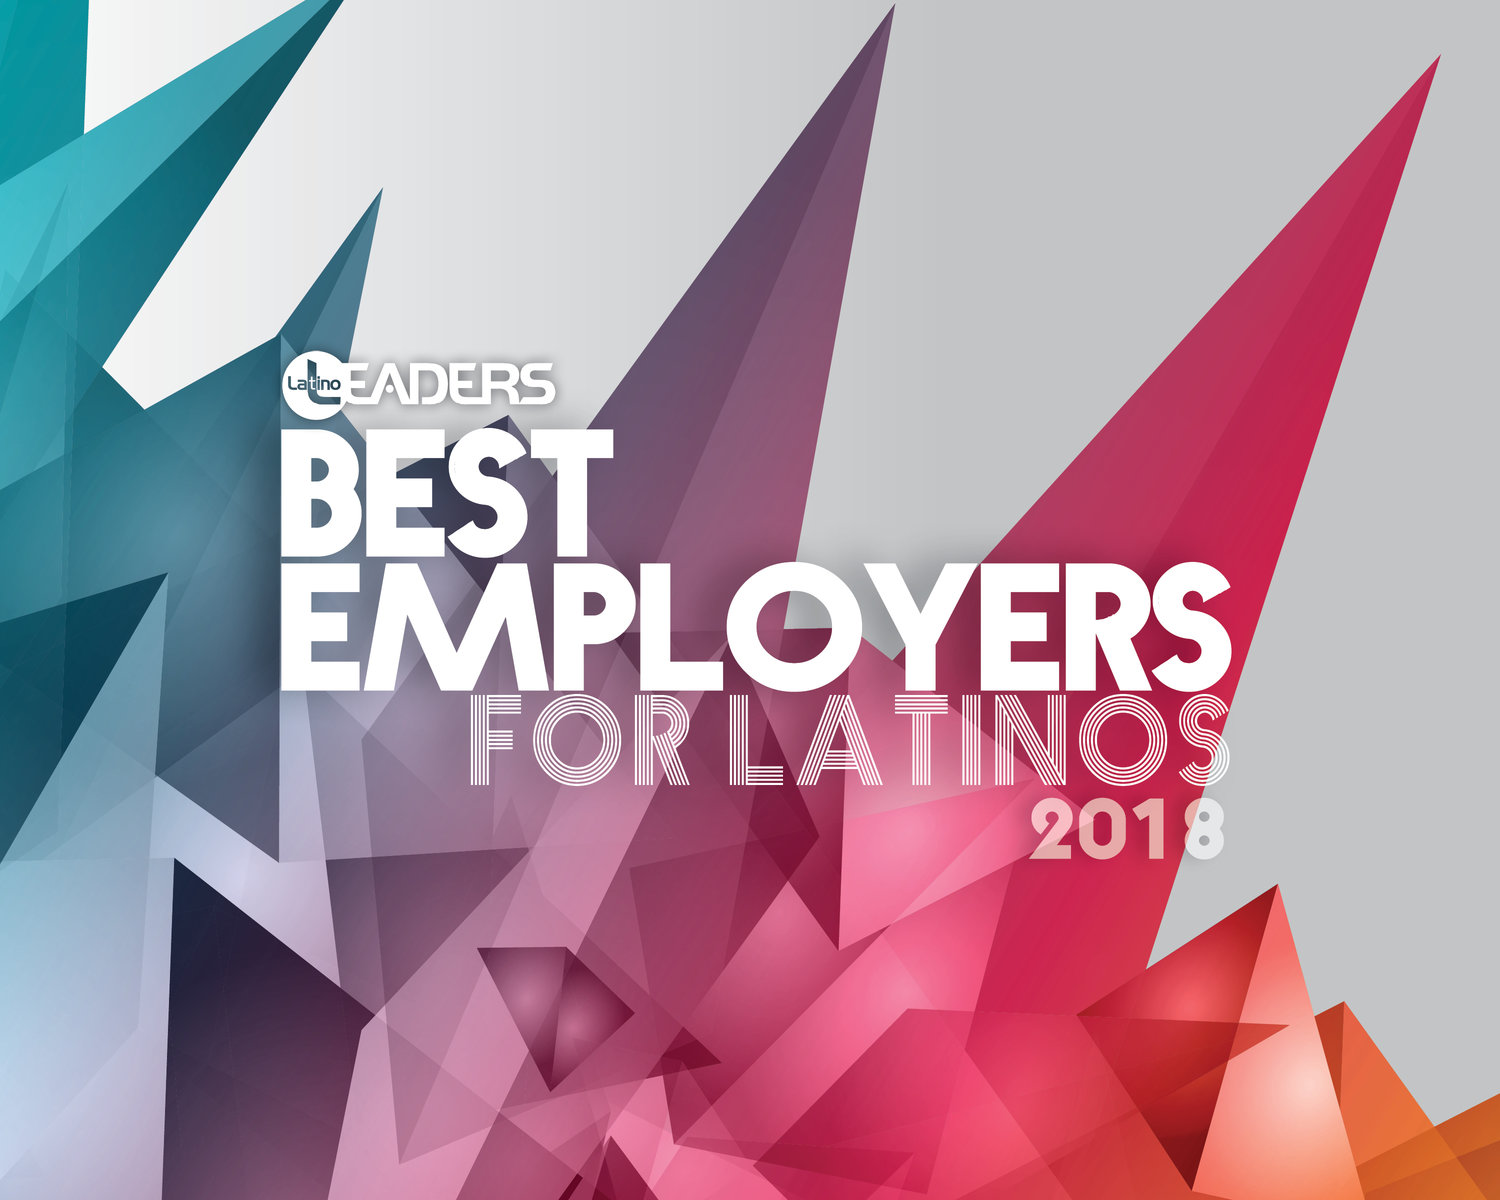 The Best Employers for Latinos 2018 — Latino Leaders Magazine